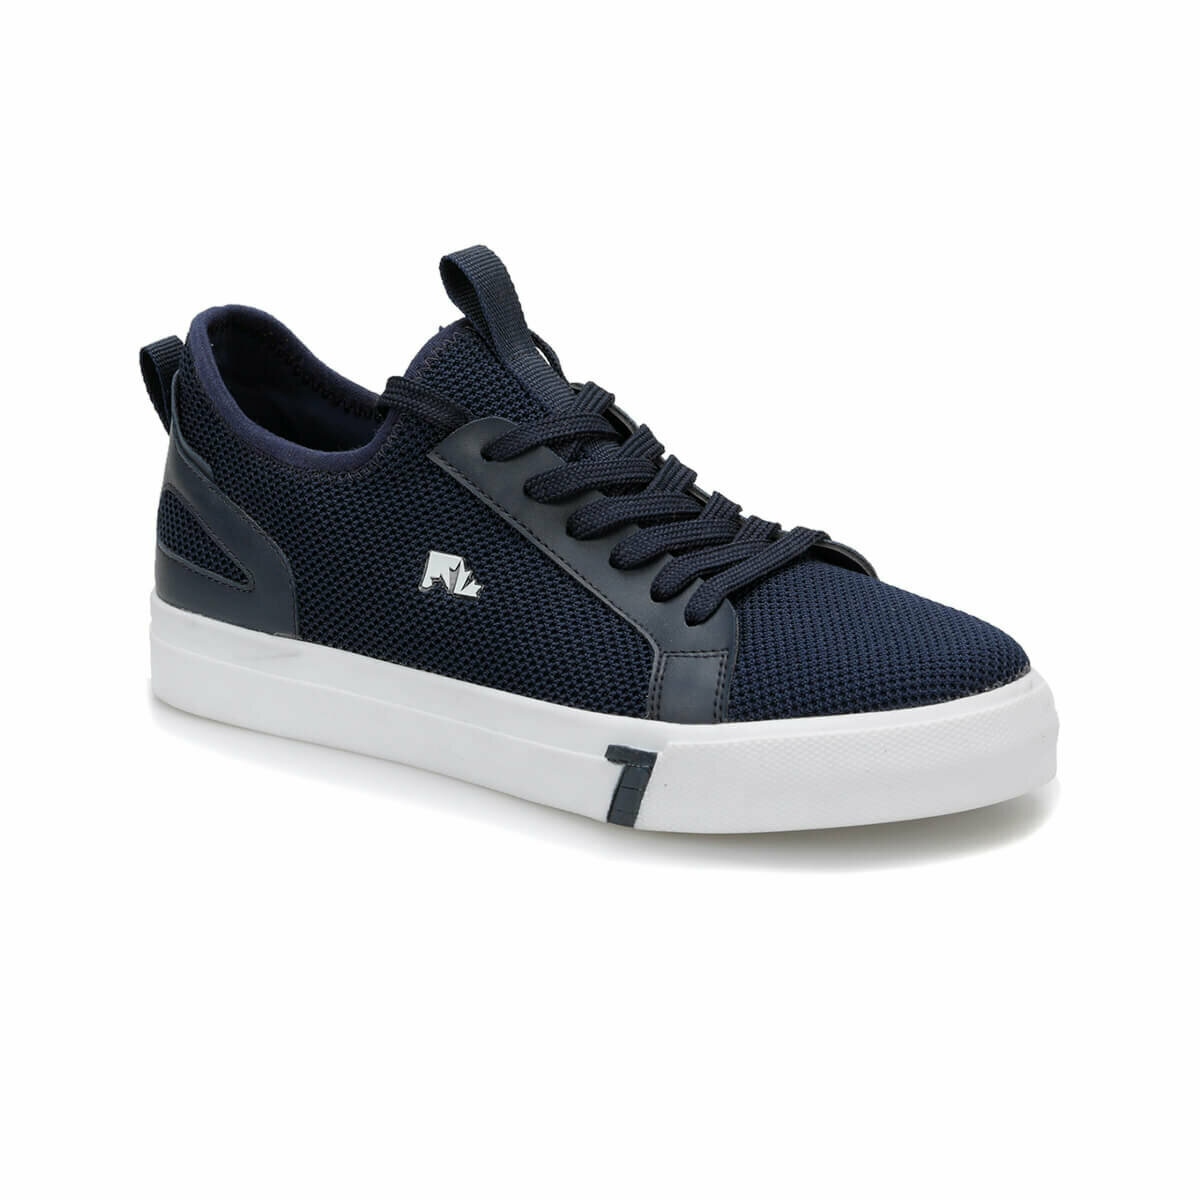 FLO NAPOLI Navy Blue Men 'S Sneaker Shoes LUMBERJACK